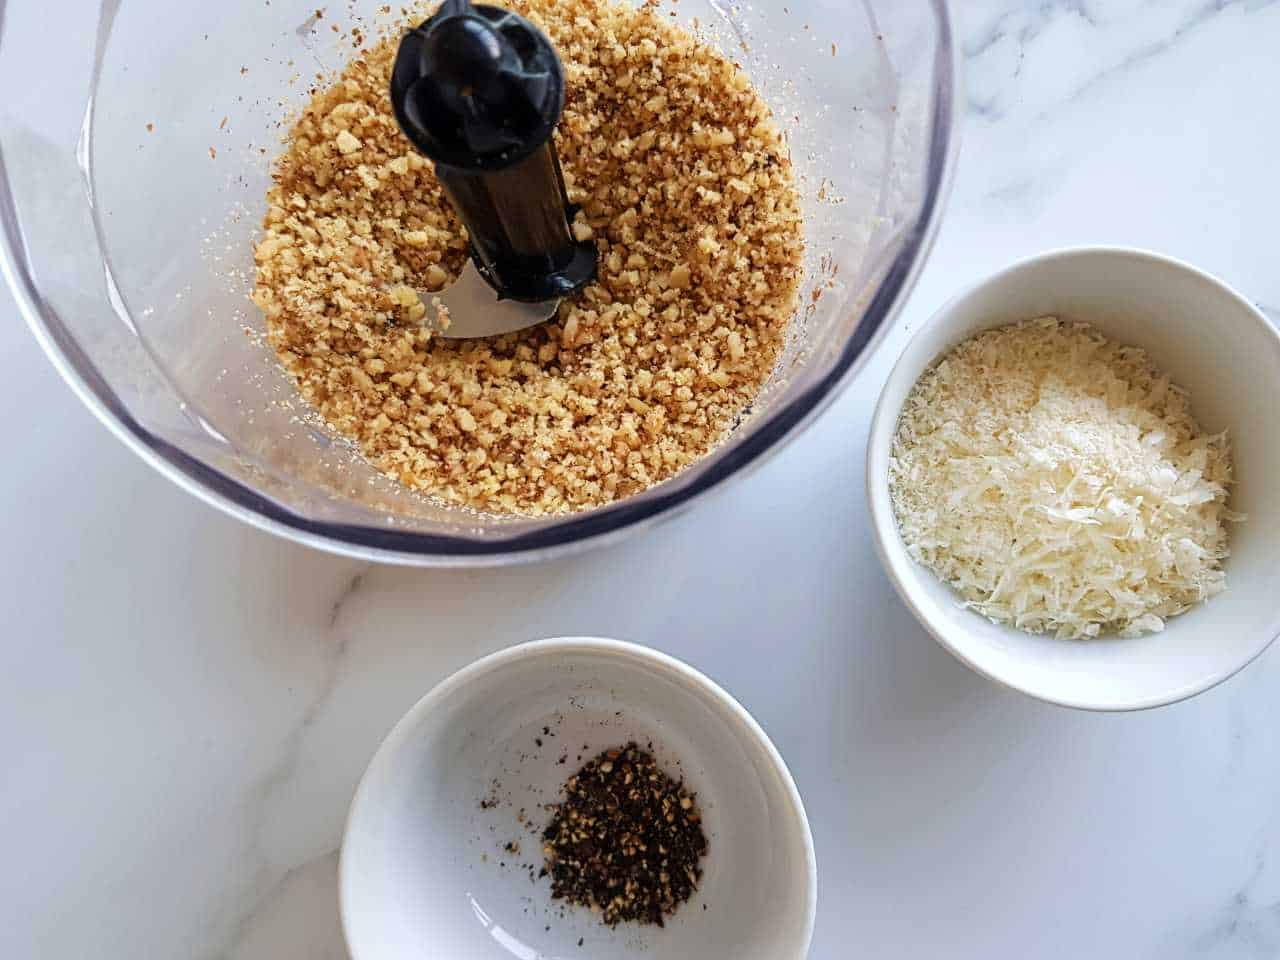 Ingredients for walnut crusted chicken in white bowls on a marble table.